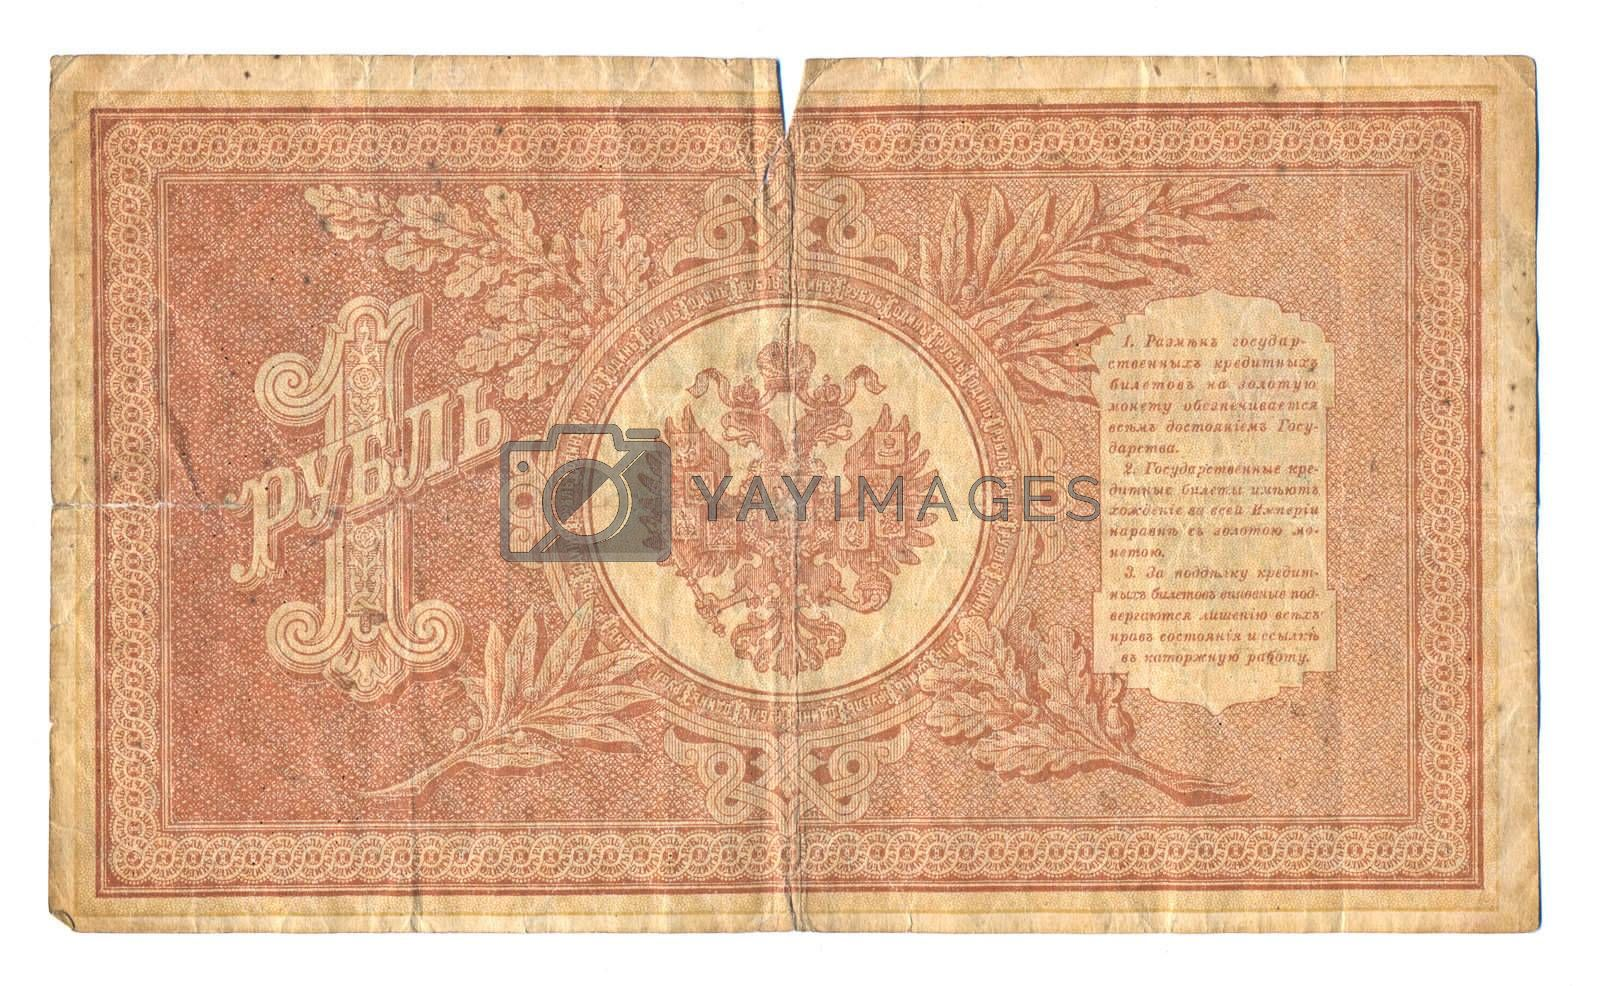 The scanned monetary denomination which is a museum piece, advantage in 1 roubles, let out at the time of Imperial Russia